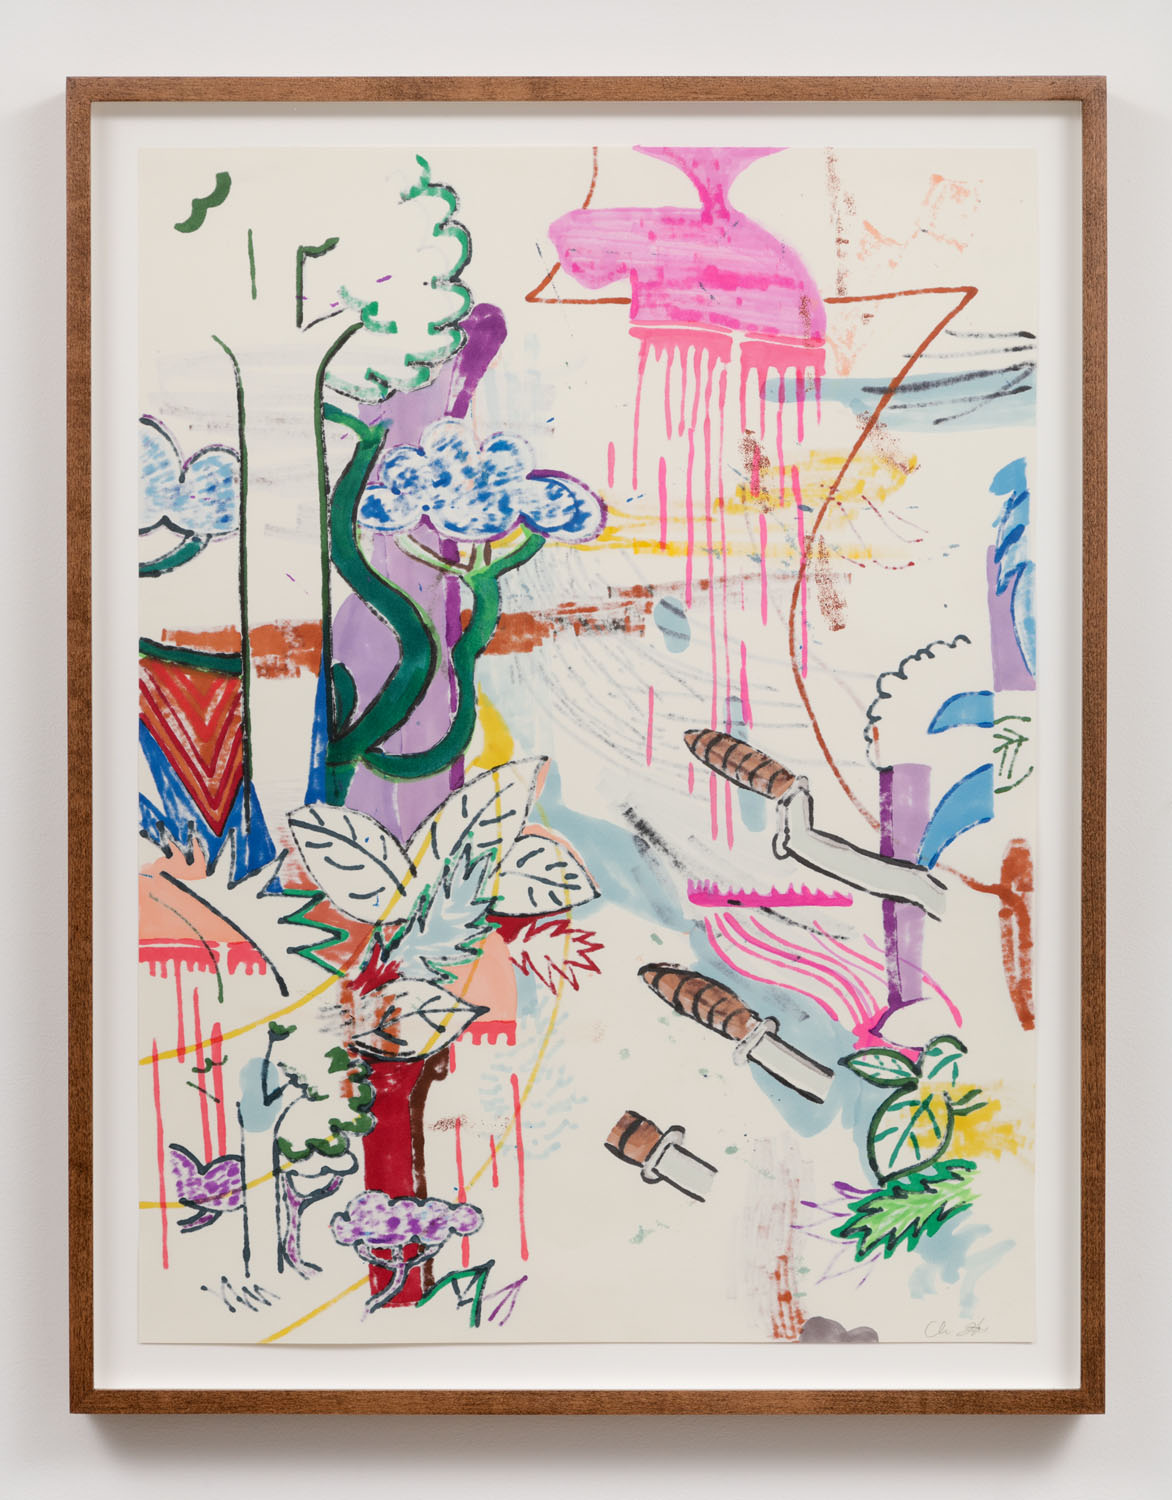 Chris Hood   Untitled (Refraction Drawing 3) , 2018  Ink and markers on Canson classic cream  24 x 18 inches (framed)